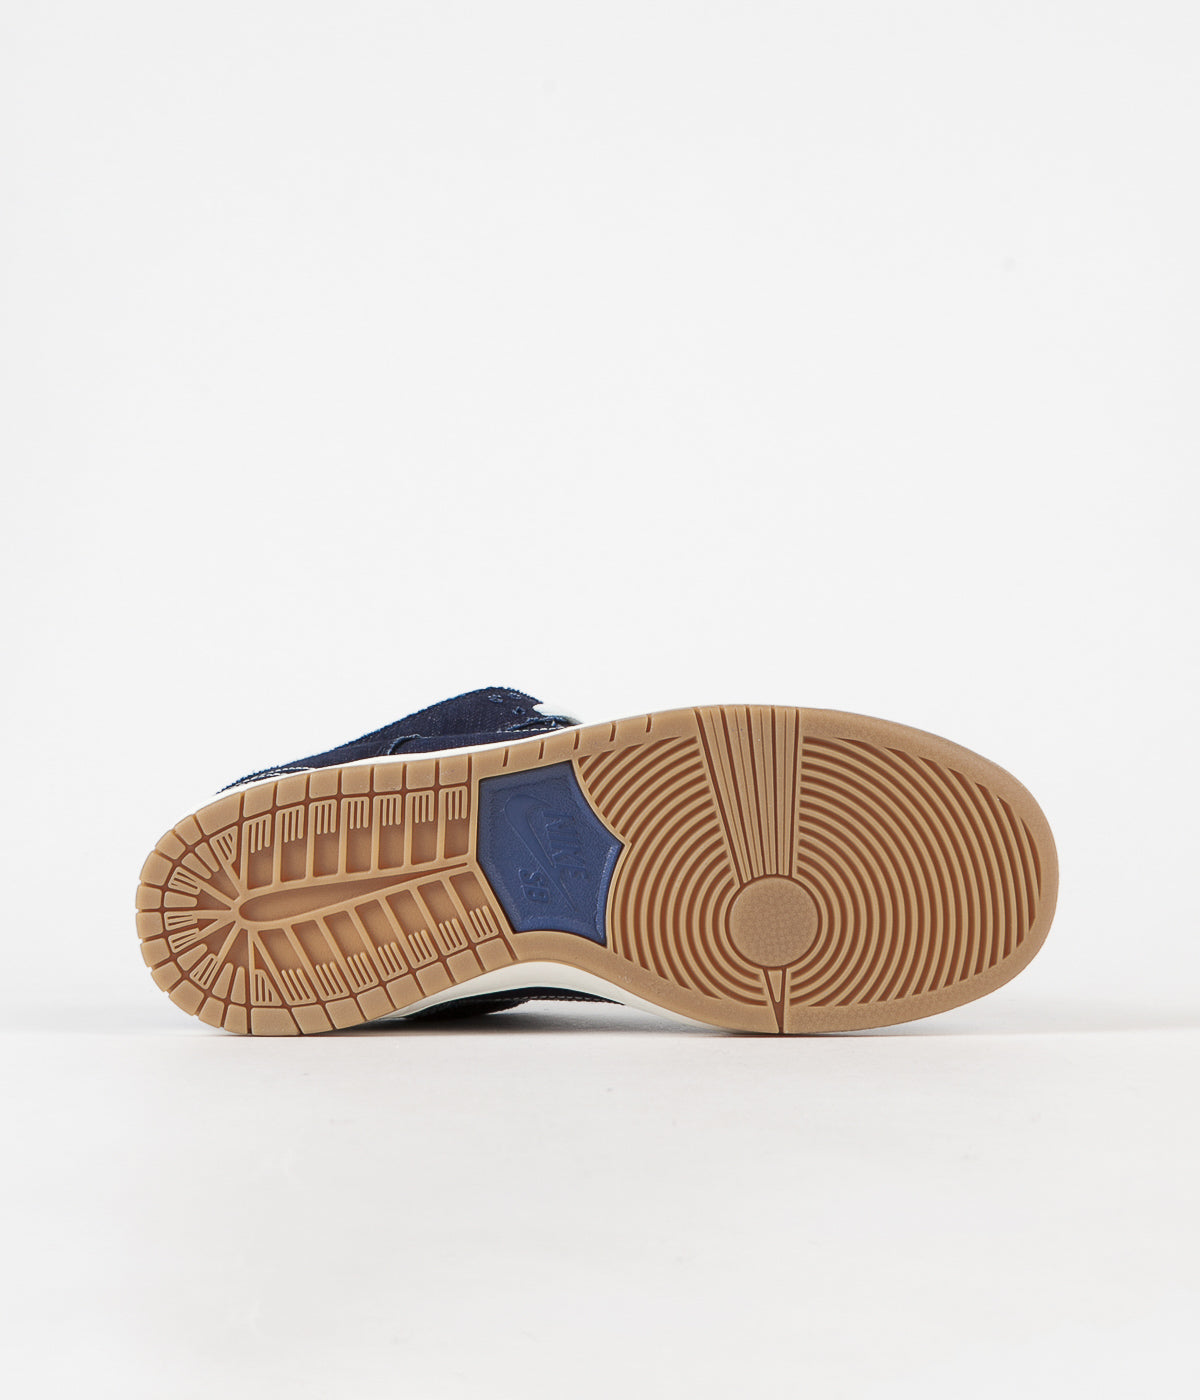 Nike SB Dunk Low Pro Premium 'Sashiko' Shoes - Mystic Navy / Sail - Mystic Navy